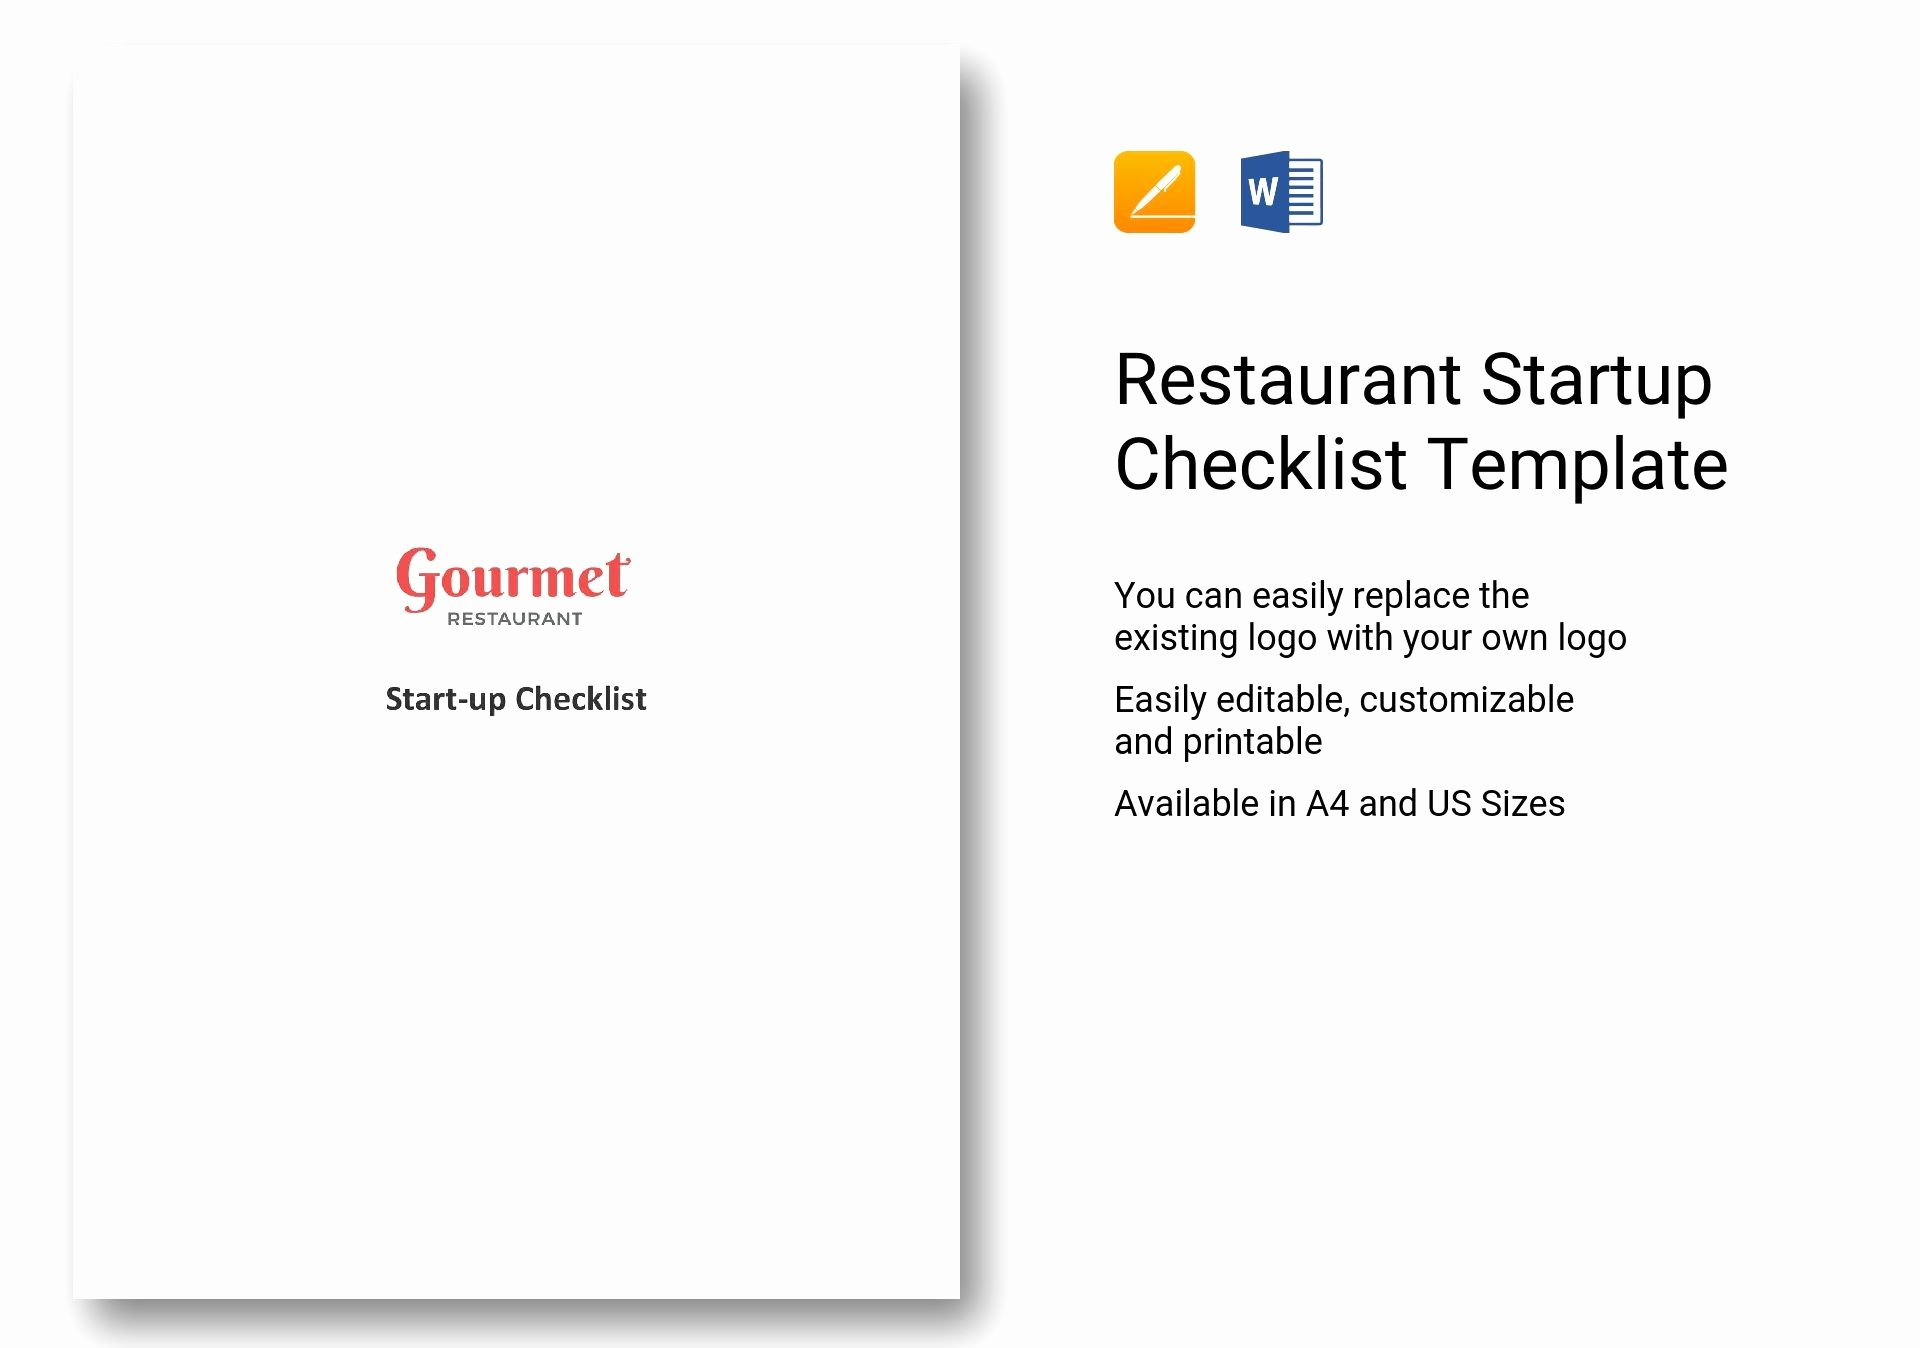 Business Startup Checklist Template Beautiful Restaurant Startup Checklist Template In Word Apple Pages